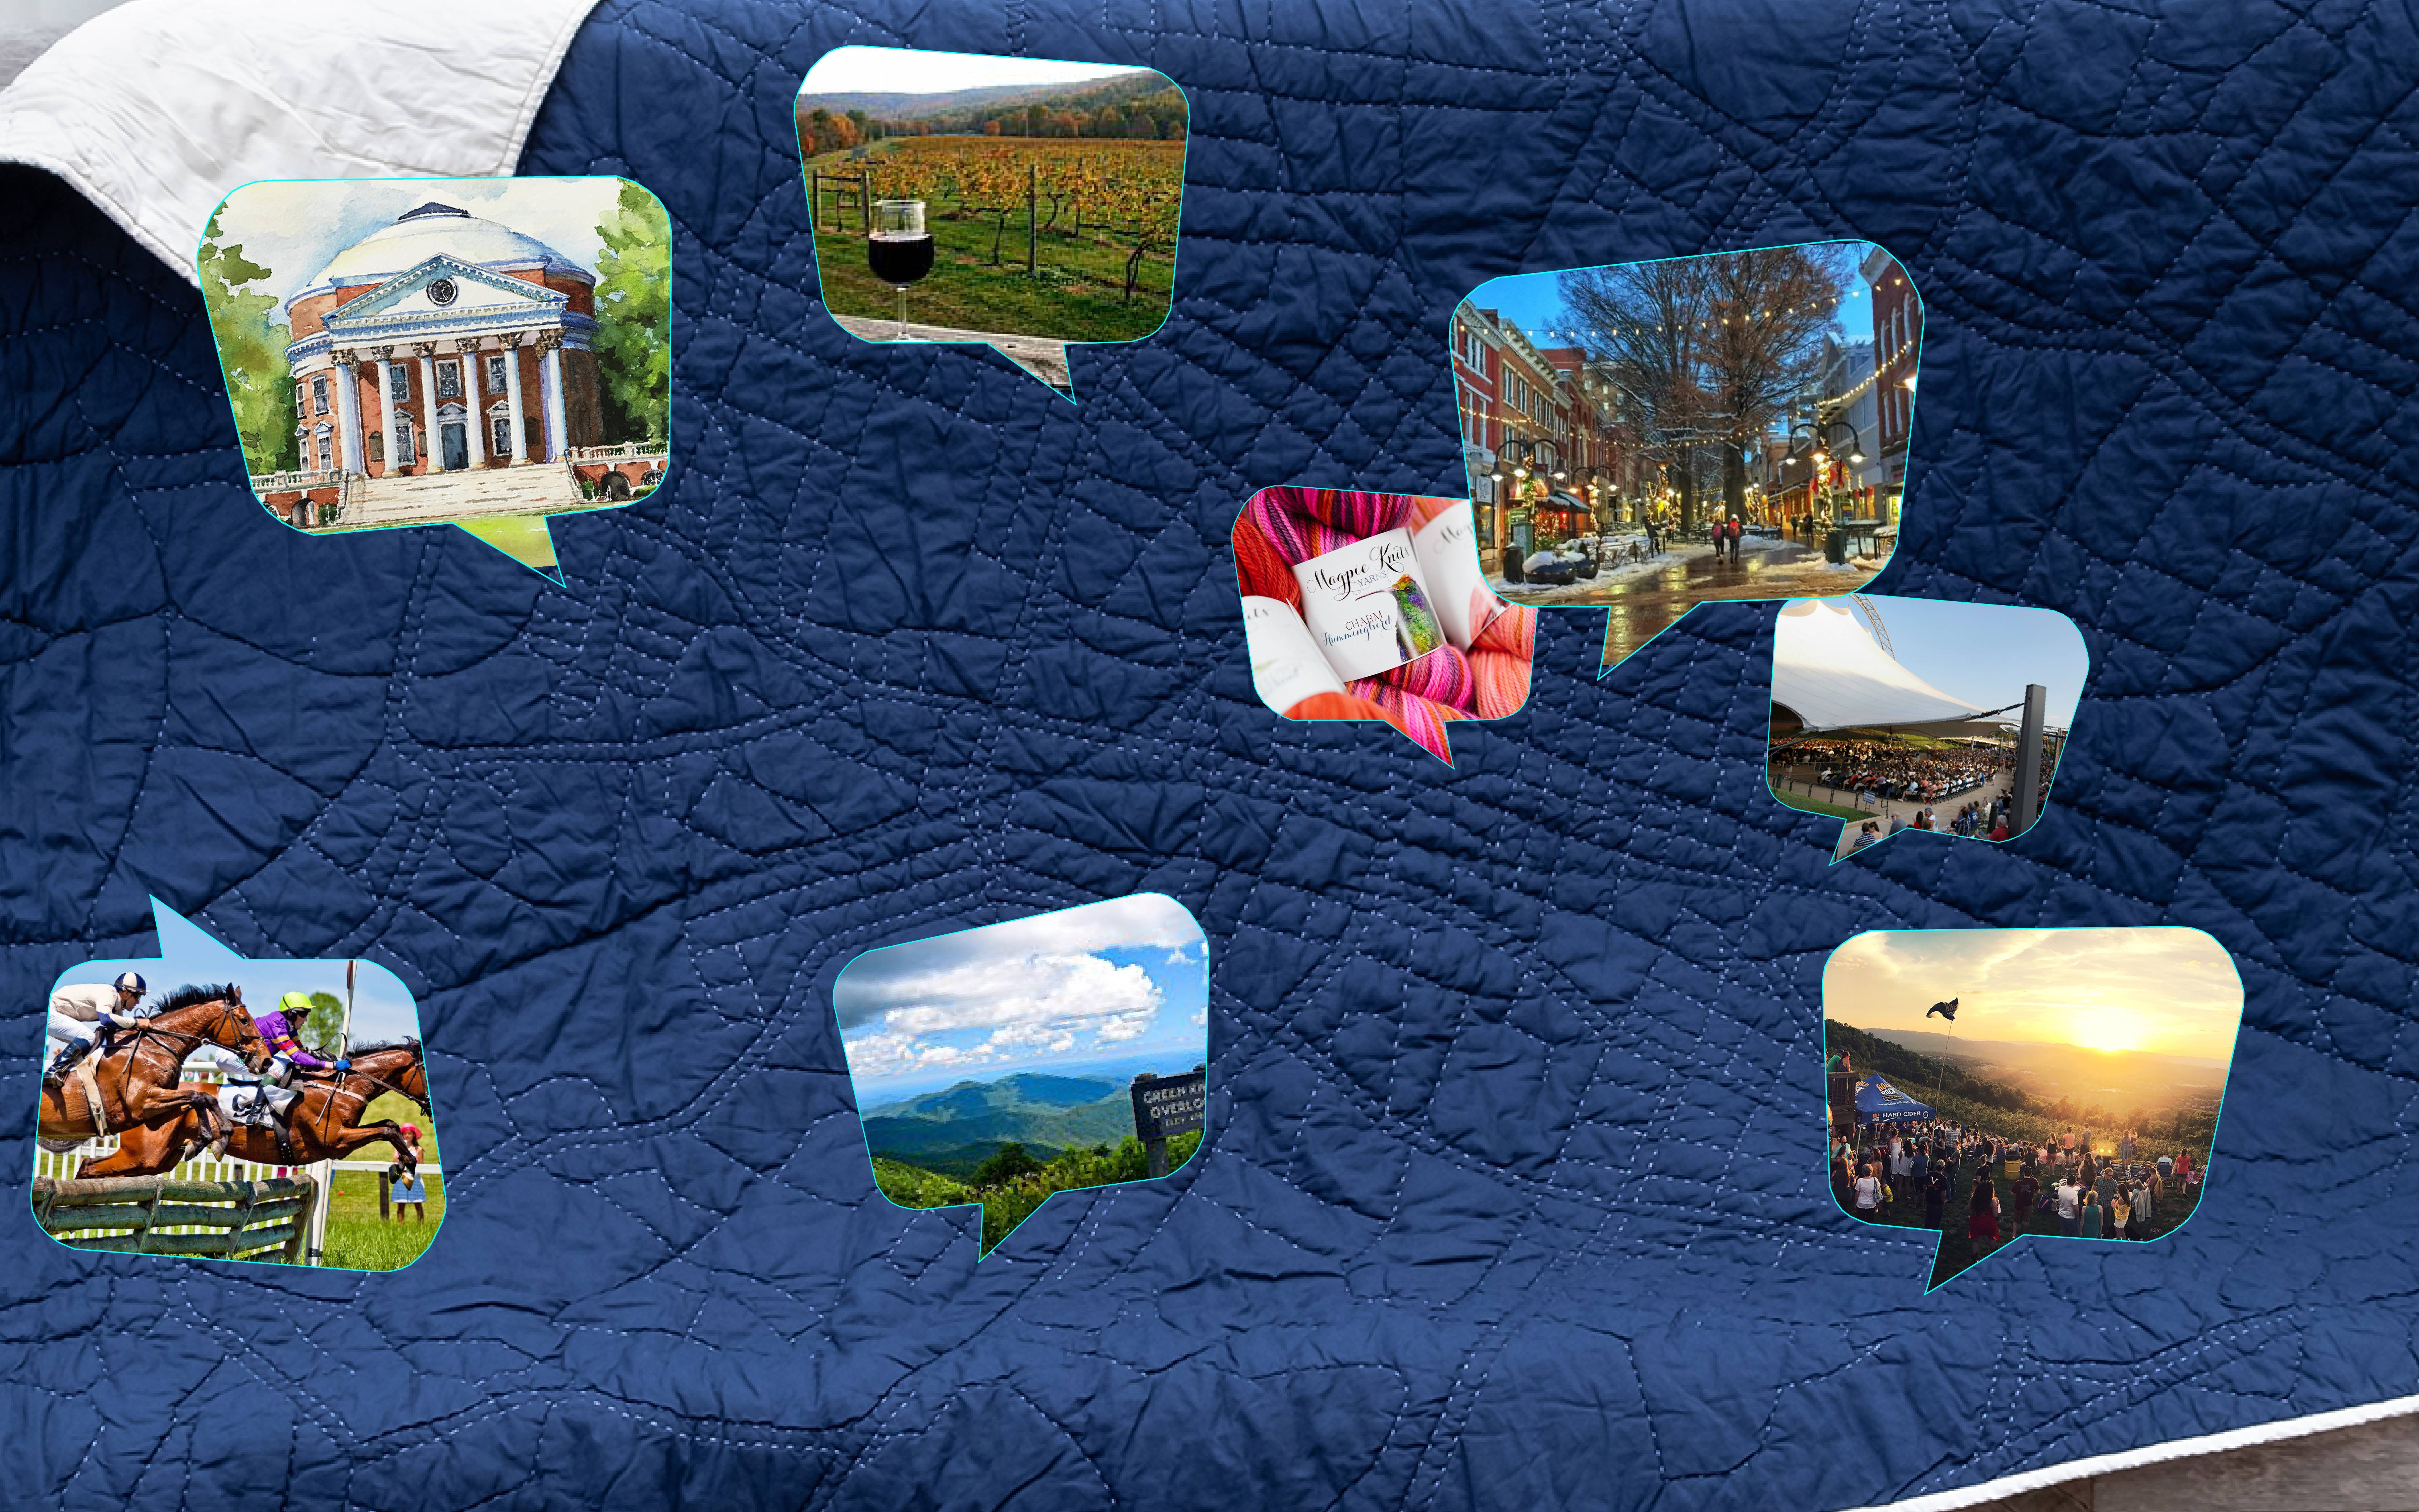 THE PERFECT GIFT FOR GRADS! HAPTIC LAB'S QUILT OF CHARLOTTESVILLE